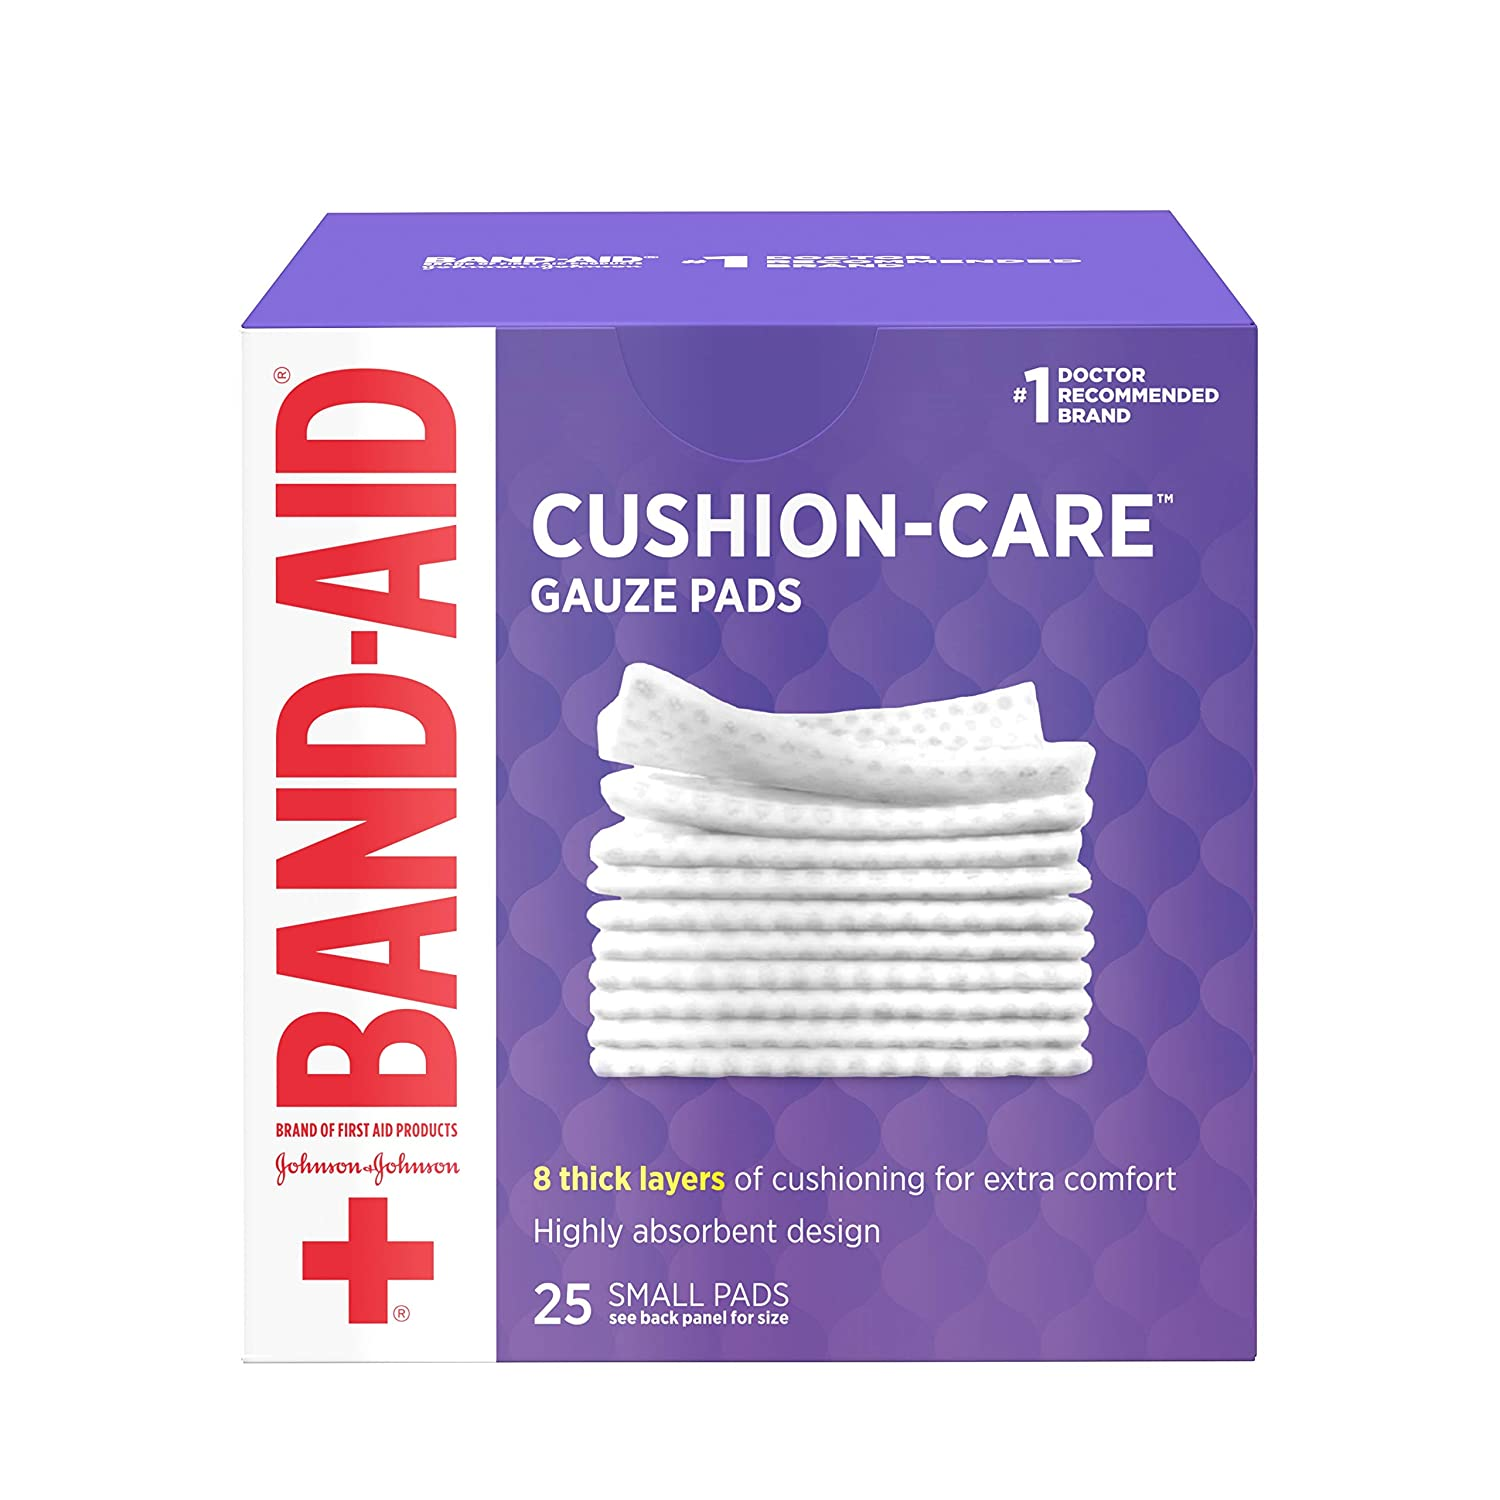 Band-Aid Brand Cushion Care Sterile Gauze Pads for Protection of Minor Cut, Scrapes & Burns, Non-Adhesive & Wound Care Dressing Pads, Small Size, 2 inches x 2 inches, 25 ct